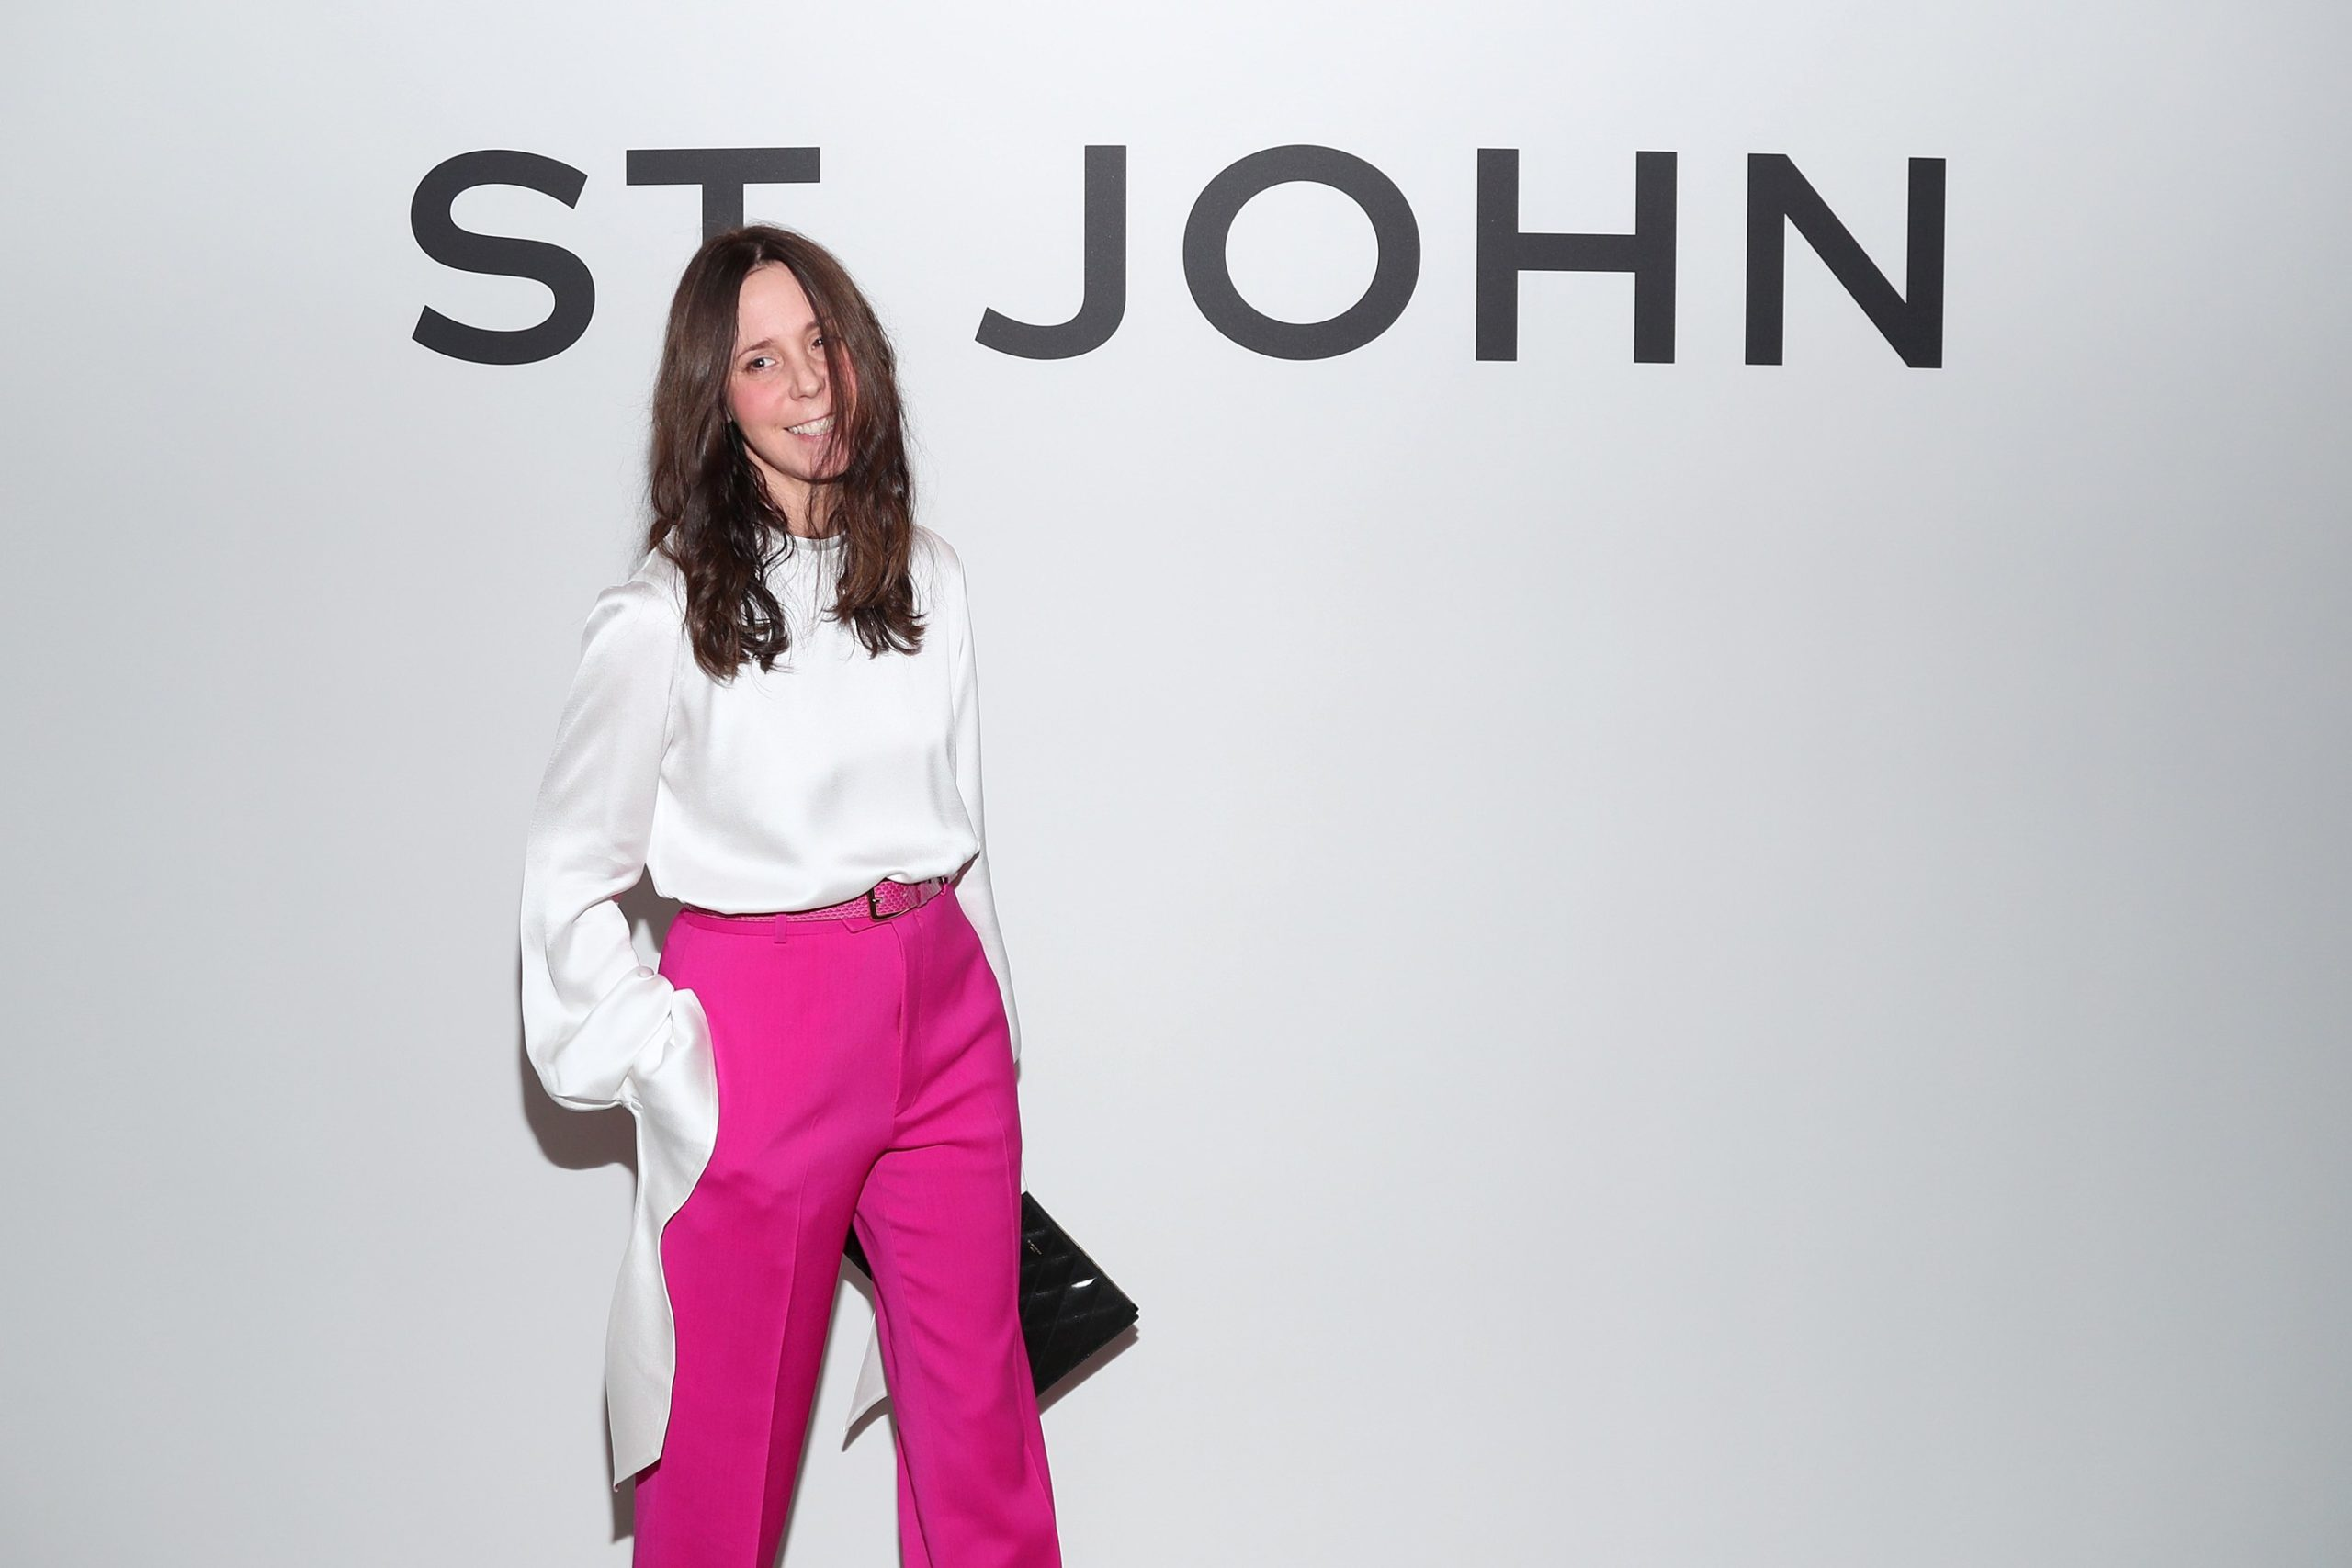 St.-John-New-Creative-Director-Zoe-Turner-Mosnar-Communications